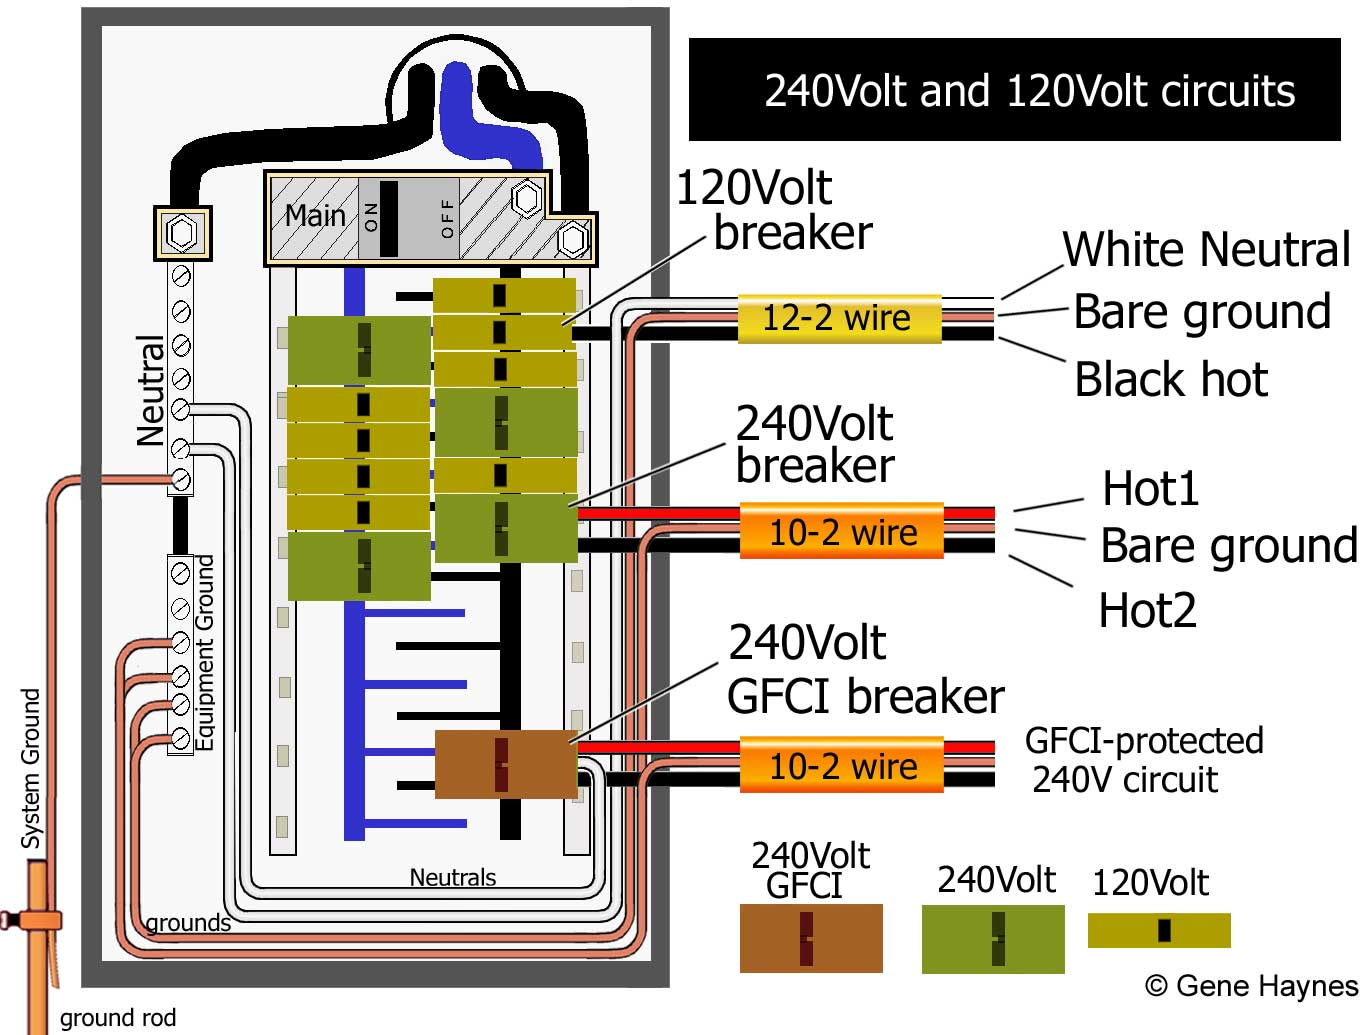 Afci And Gfci Wiring Diagram Trusted Electrical Diagrams Splendent How To Wire Circuit Breaker Rh Waterheatertimer